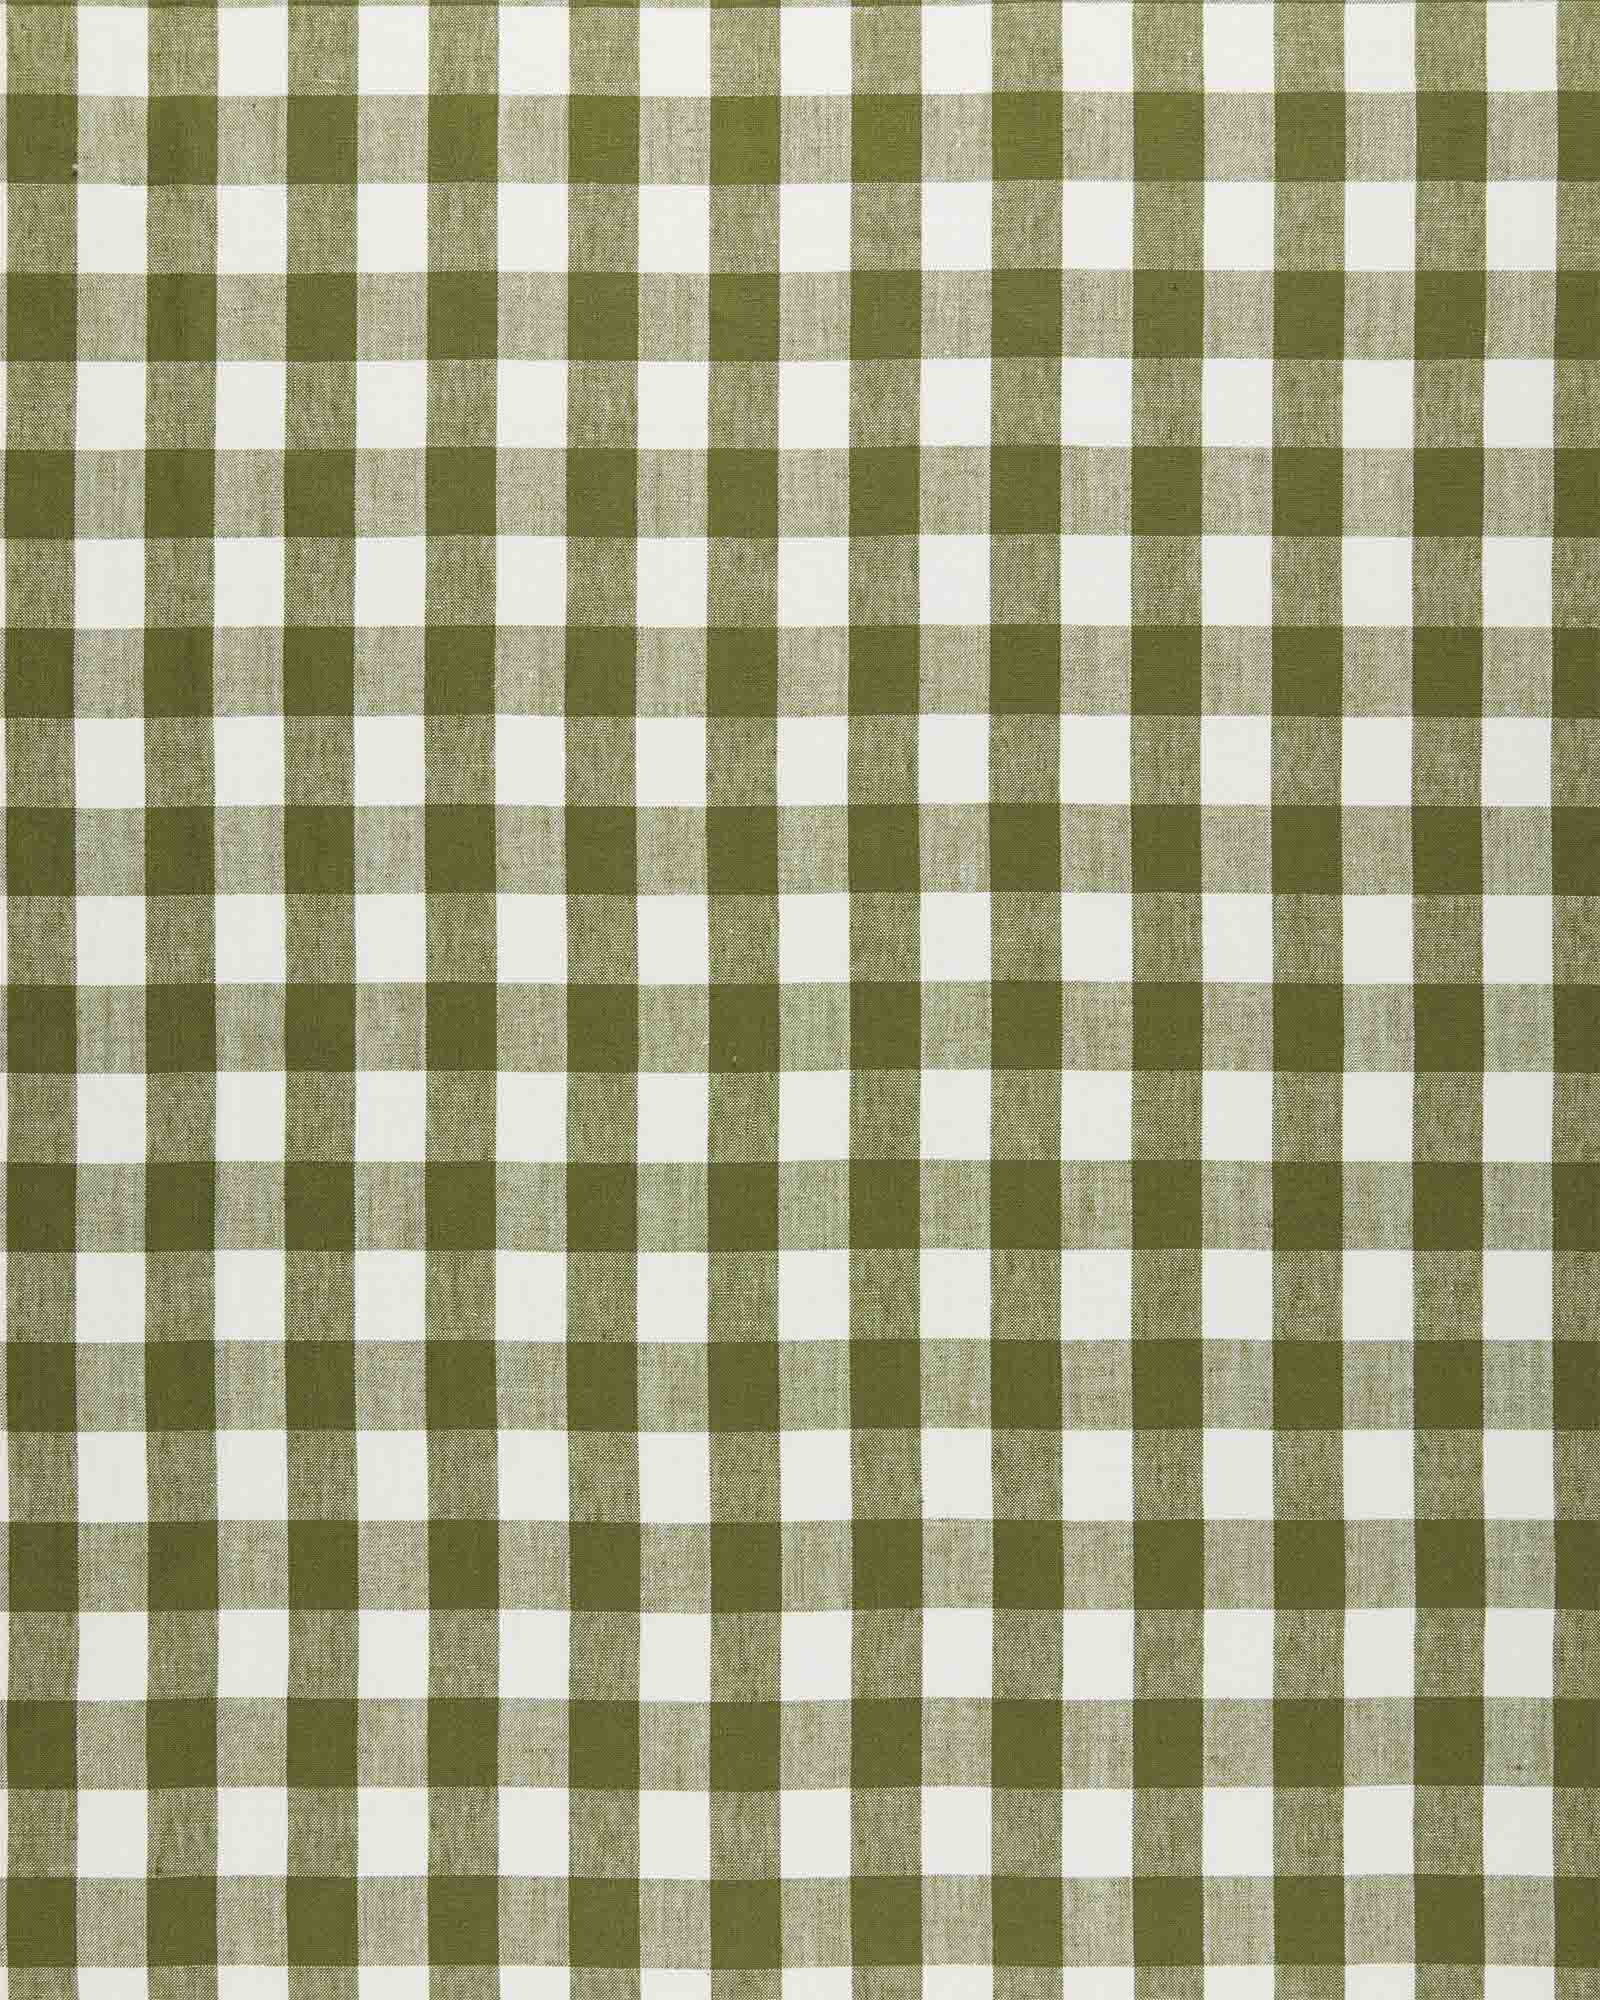 Fabric by the Yard - Classic Gingham Linen, Grove